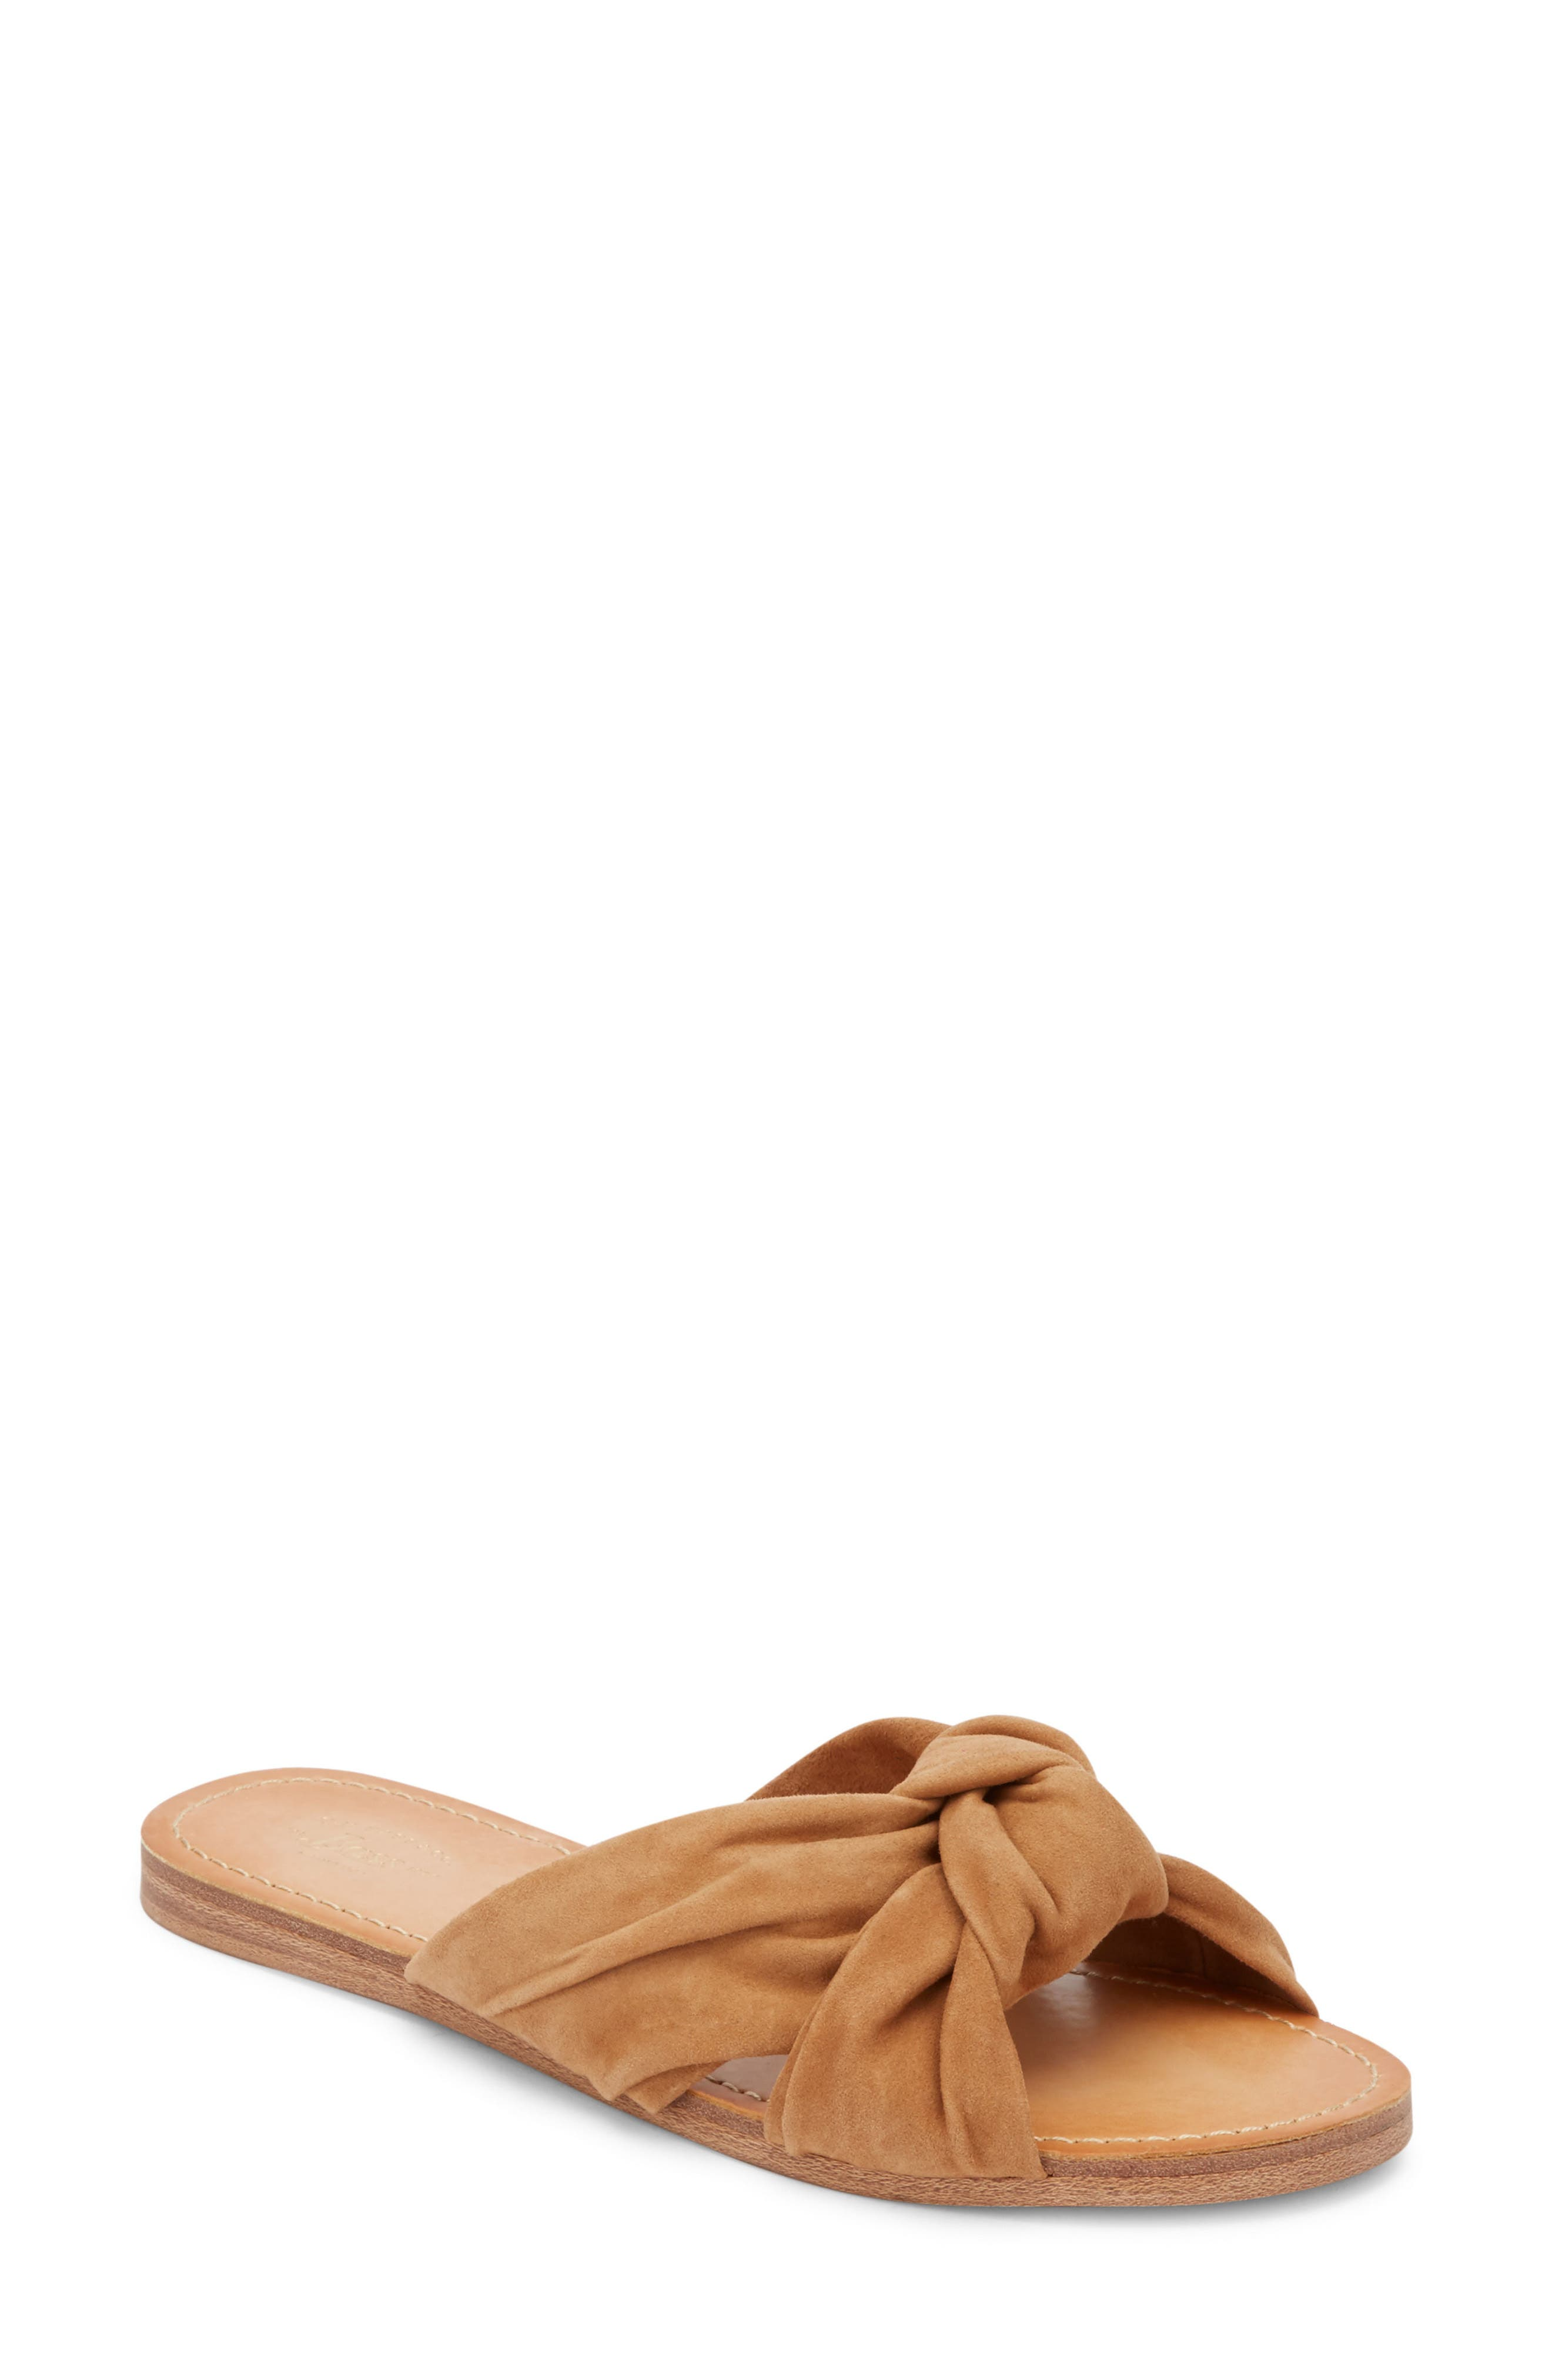 Sophie Knotted Bow Sandal,                         Main,                         color, TAN SUEDE